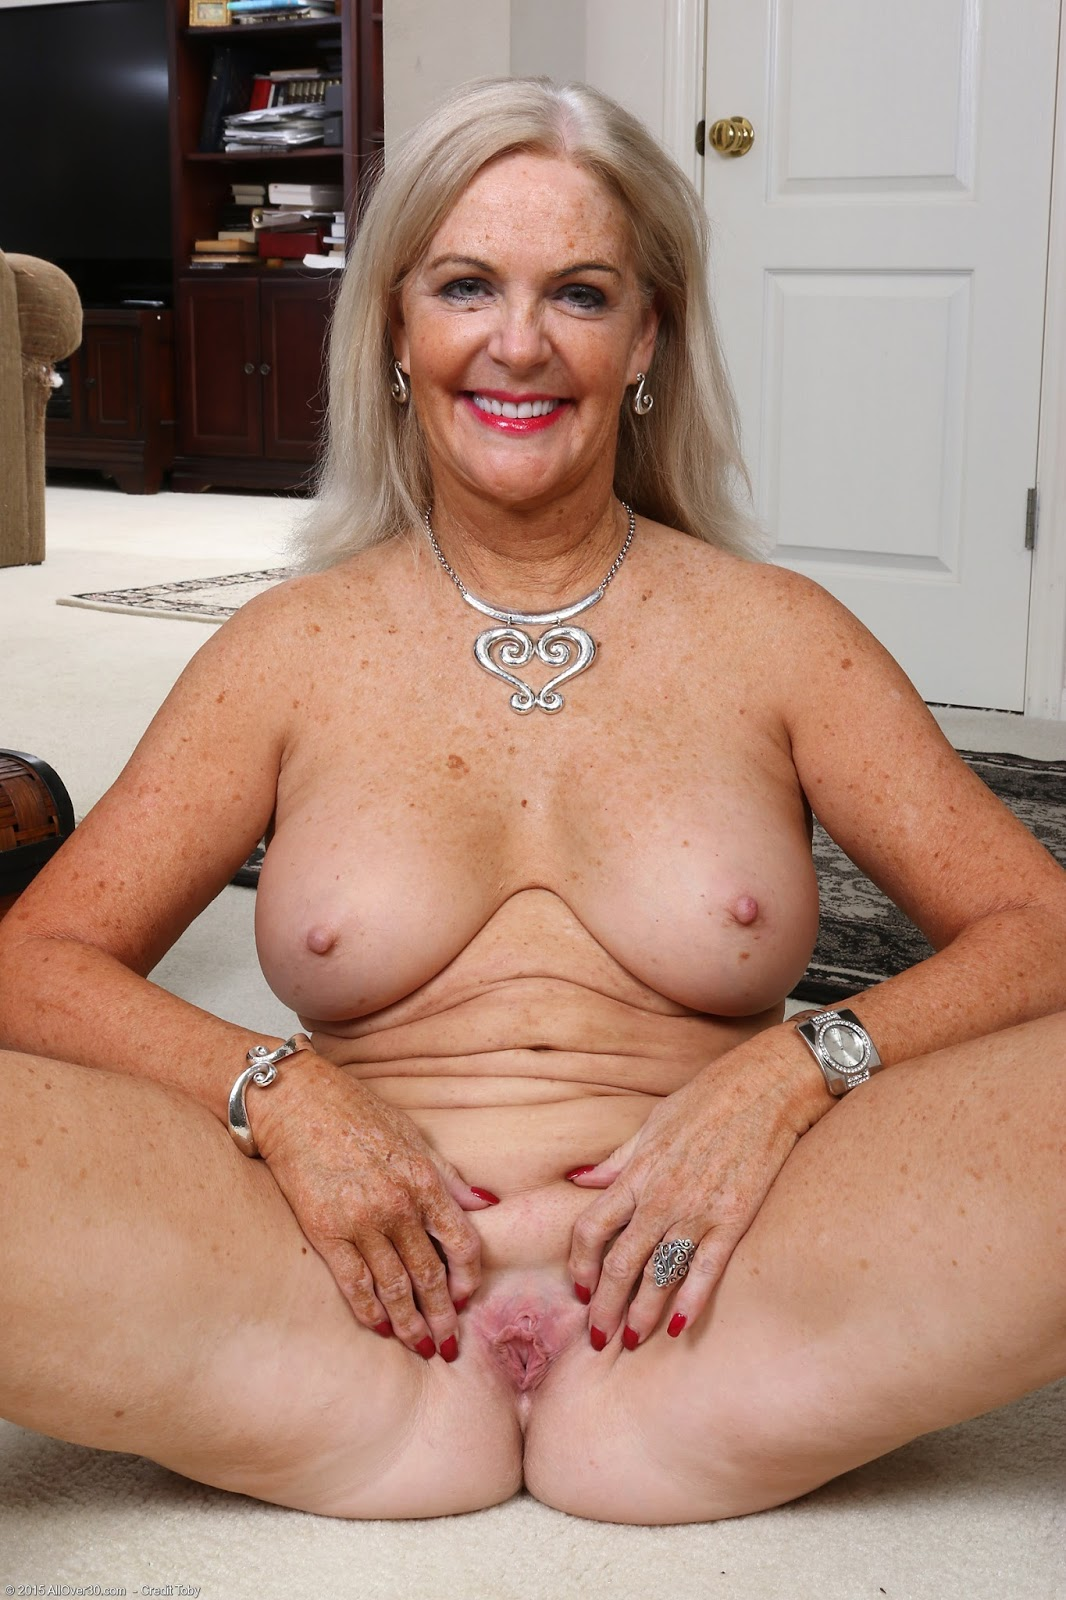 Big tits women over 70 nude that can